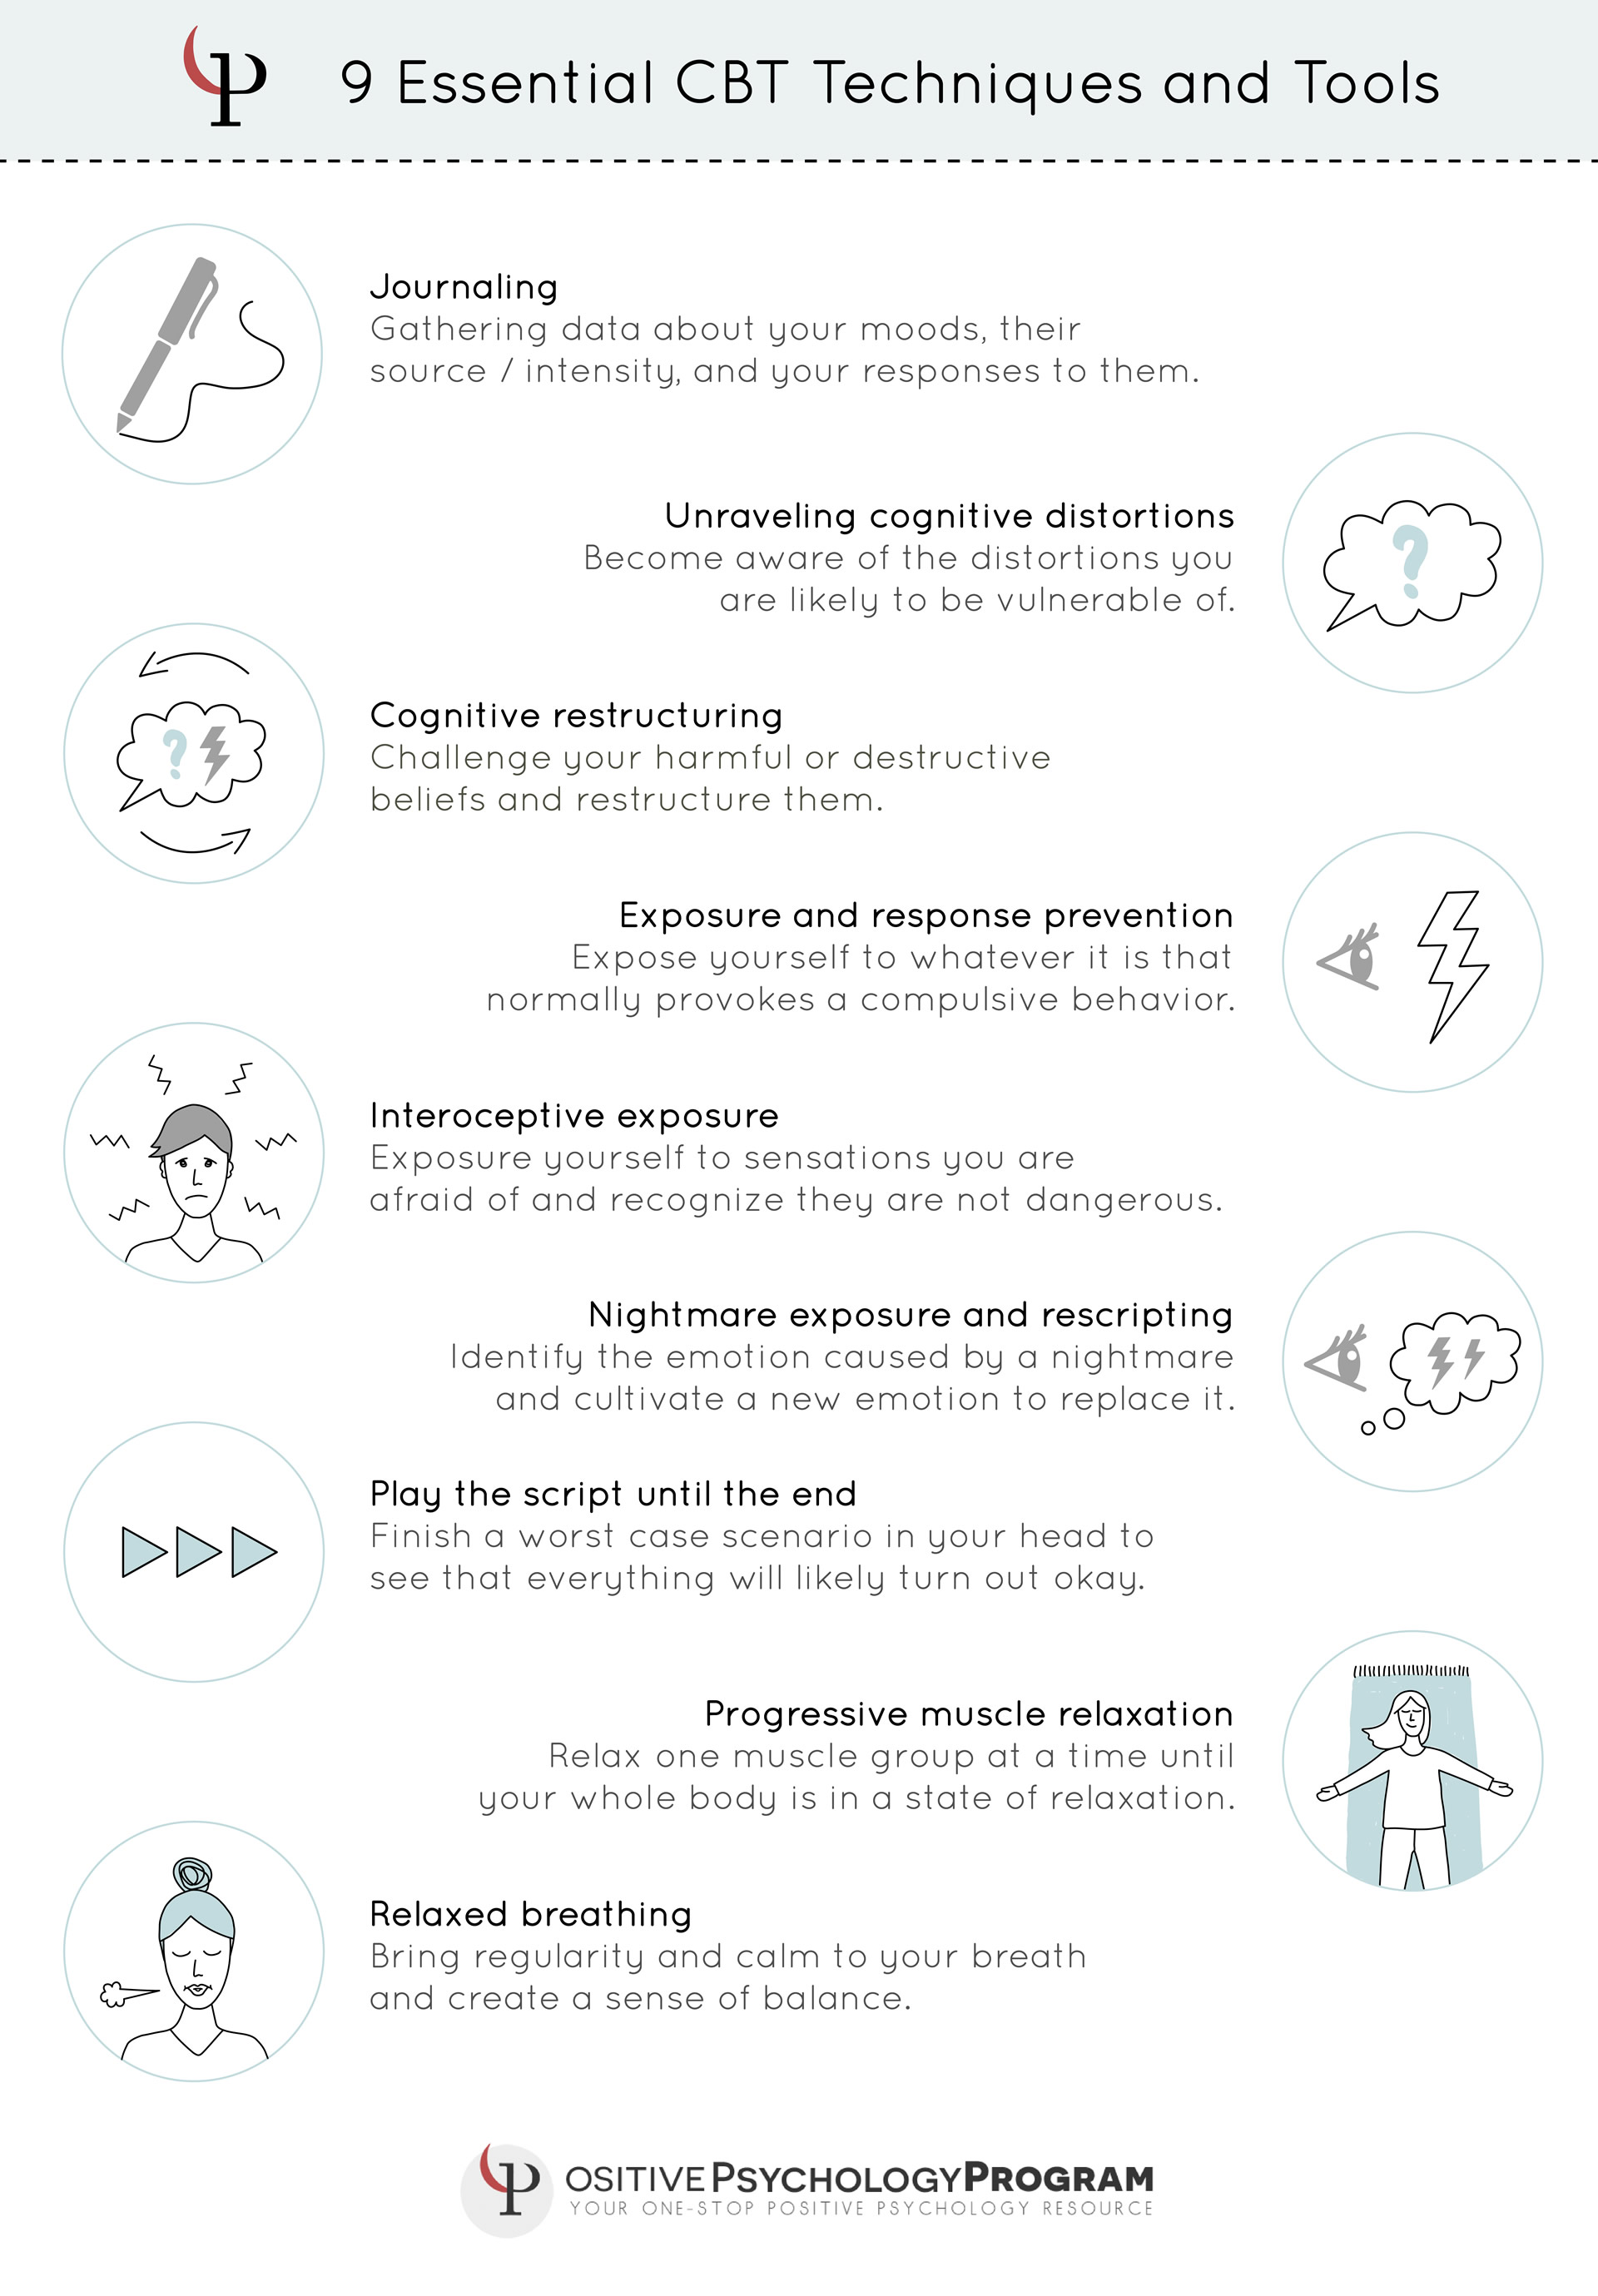 Worksheets Reality Therapy Worksheets 25 cbt techniques and worksheets for cognitive behavioral therapy 9 essential tools infographic